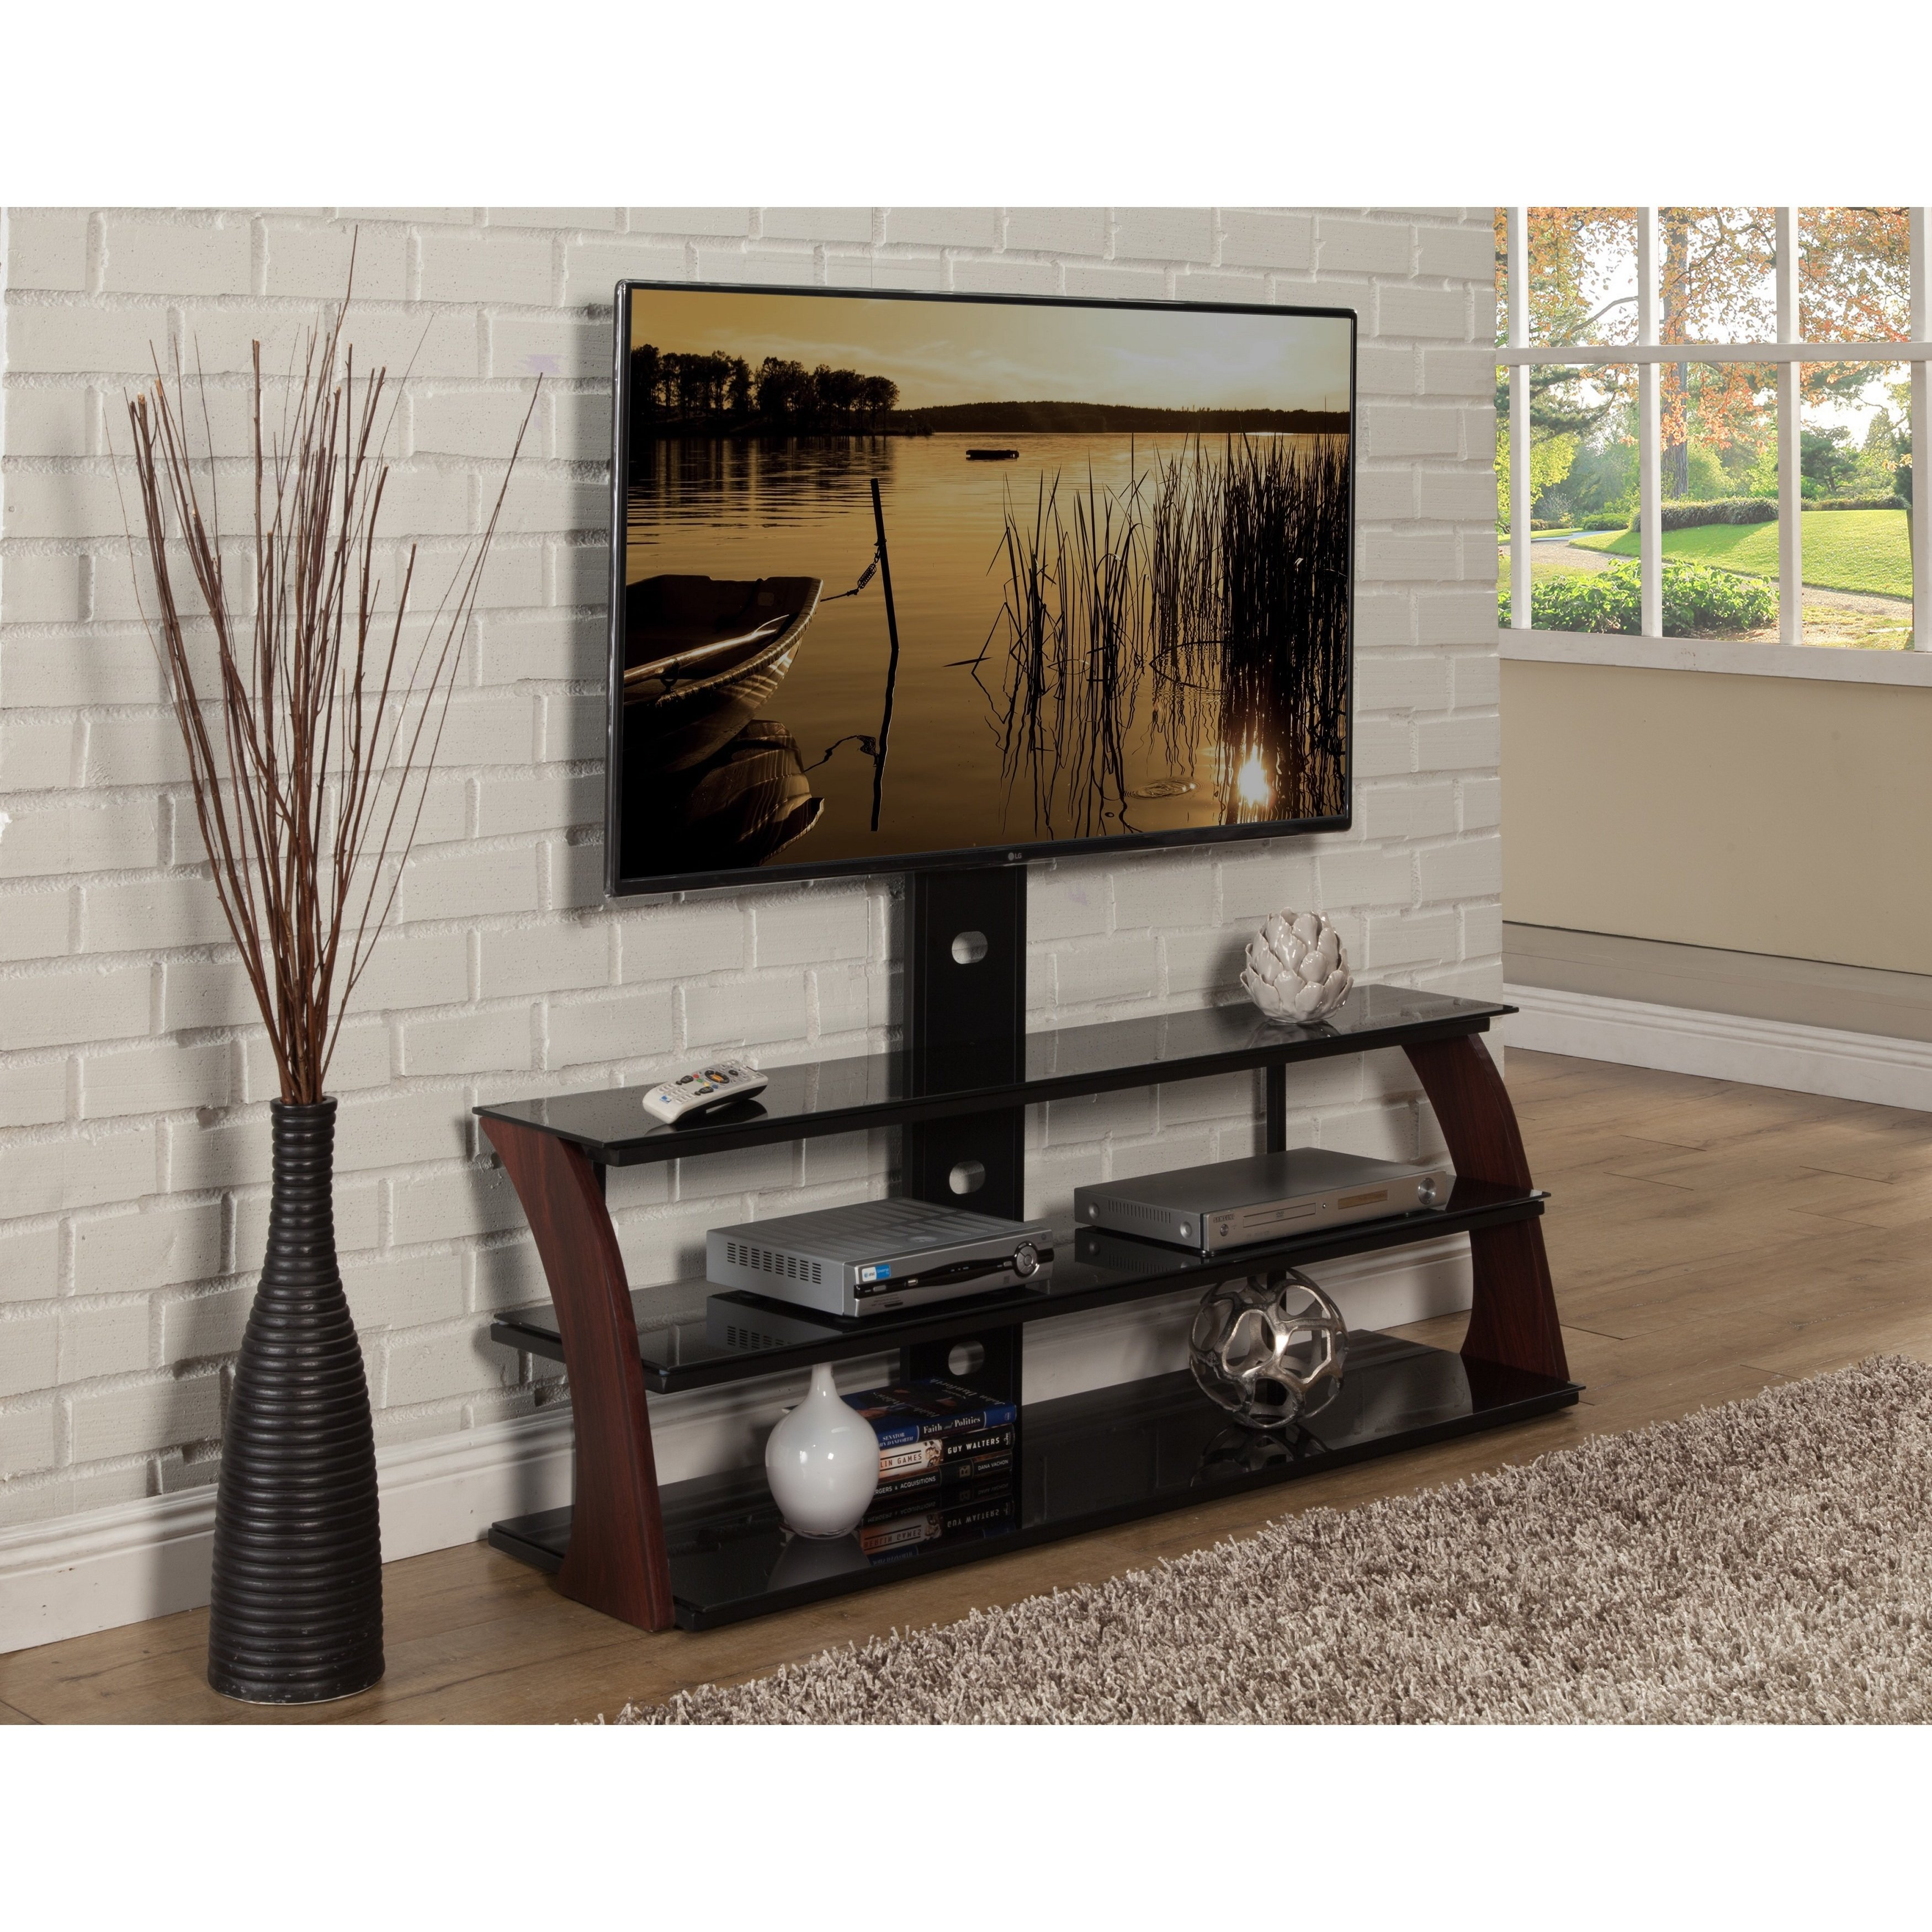 Shop Sandberg Furniture Abigail Black Tv Stand - Free Shipping Today with Walters Media Console Tables (Image 19 of 30)